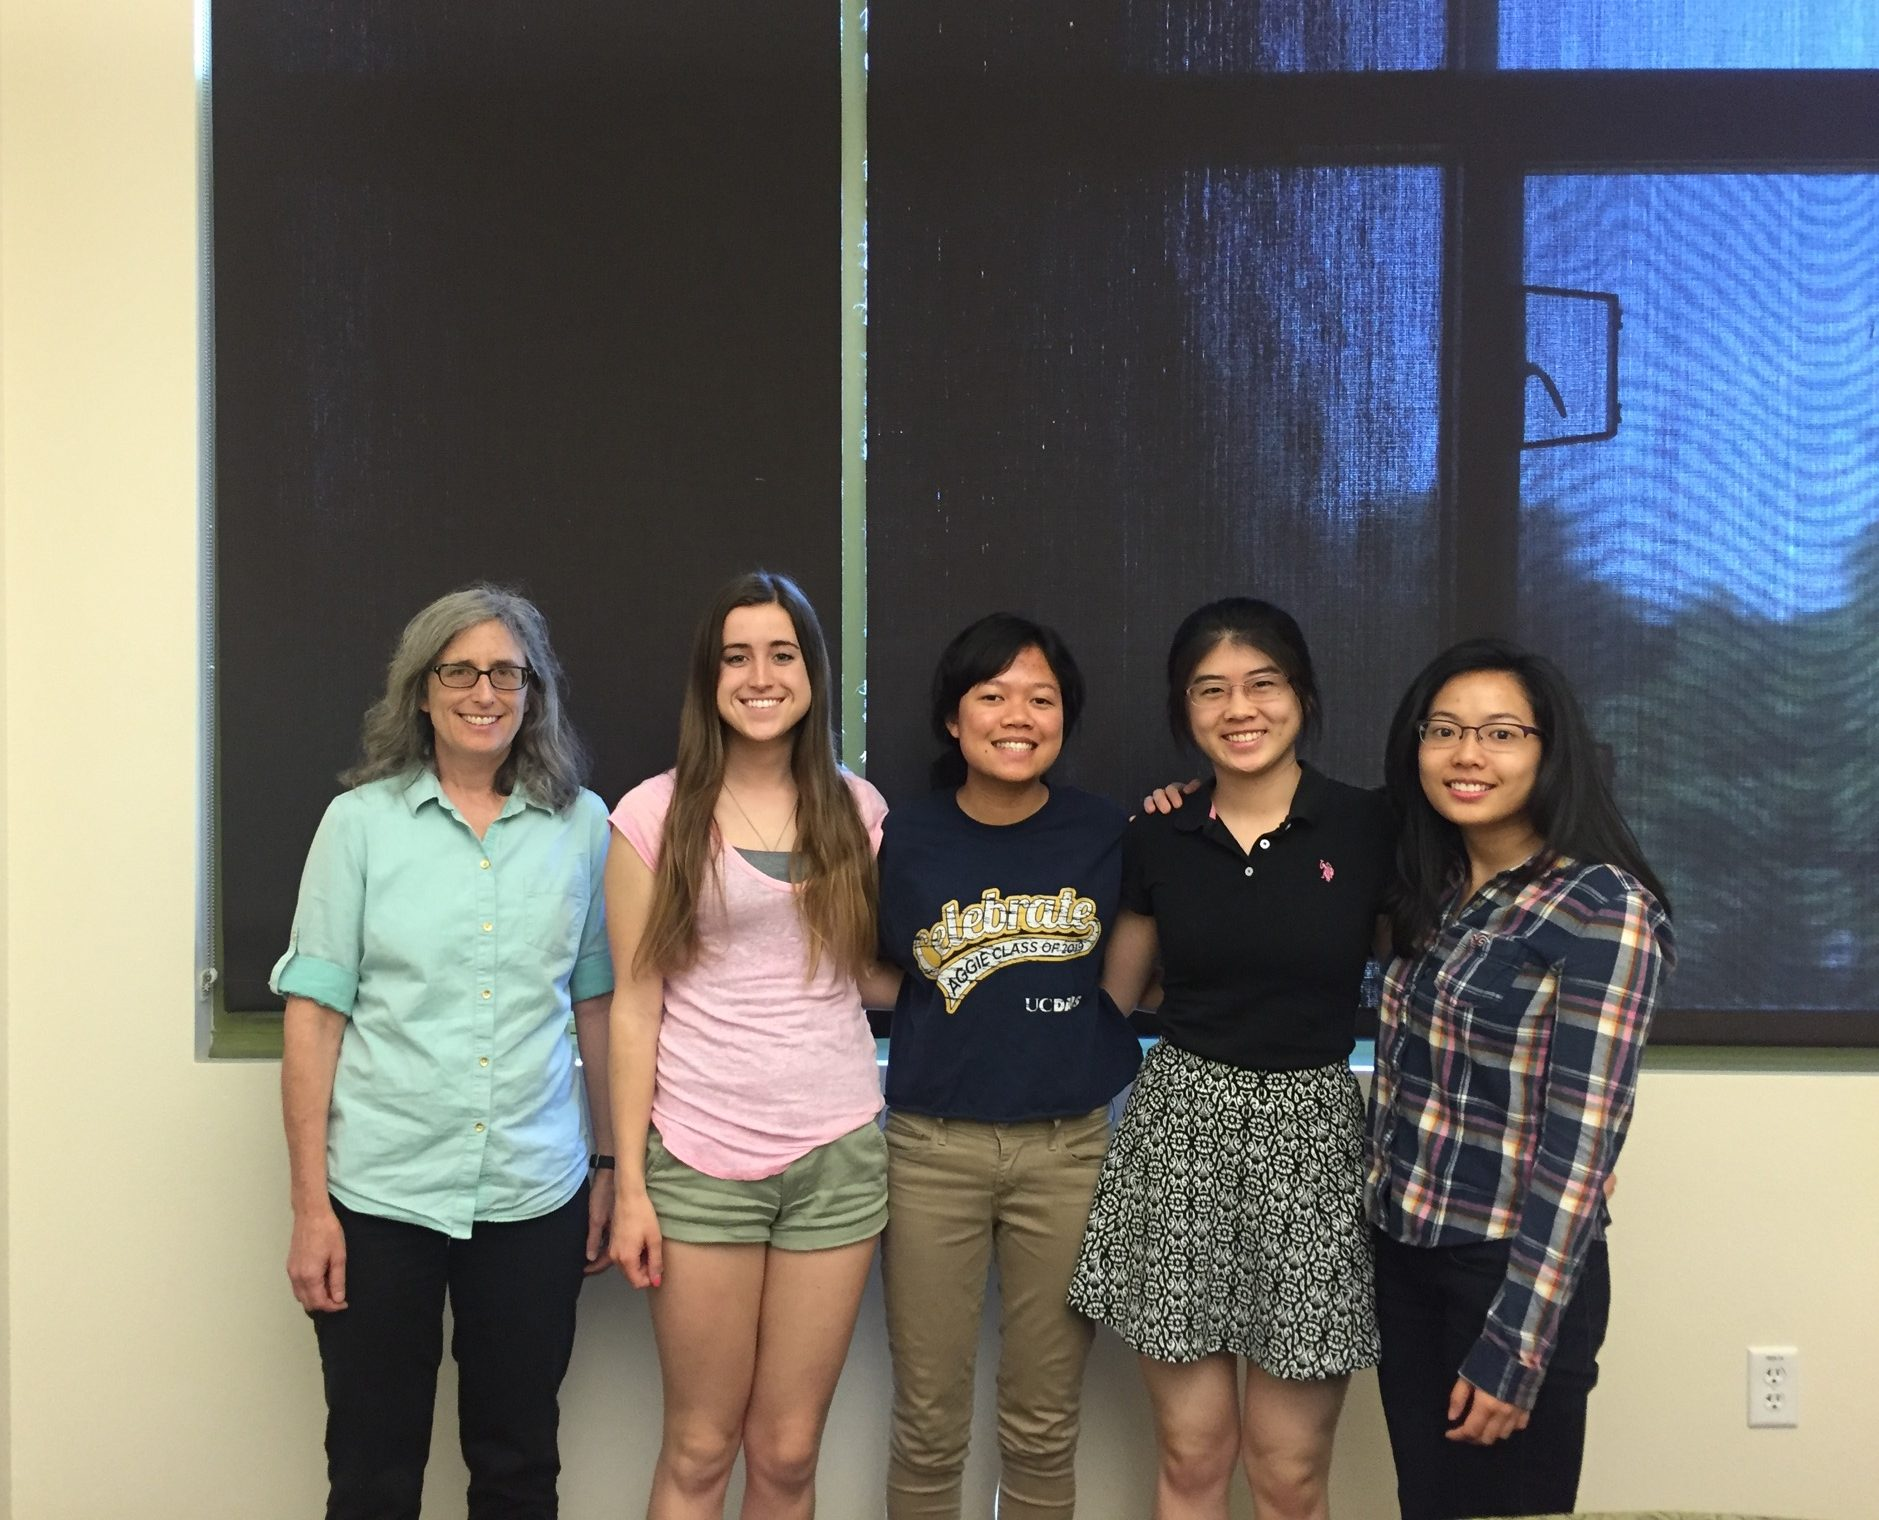 Editorial Board 2015-2016. (Left to right) Dr. Burgess, Nicole, Hong, Lo, Carly